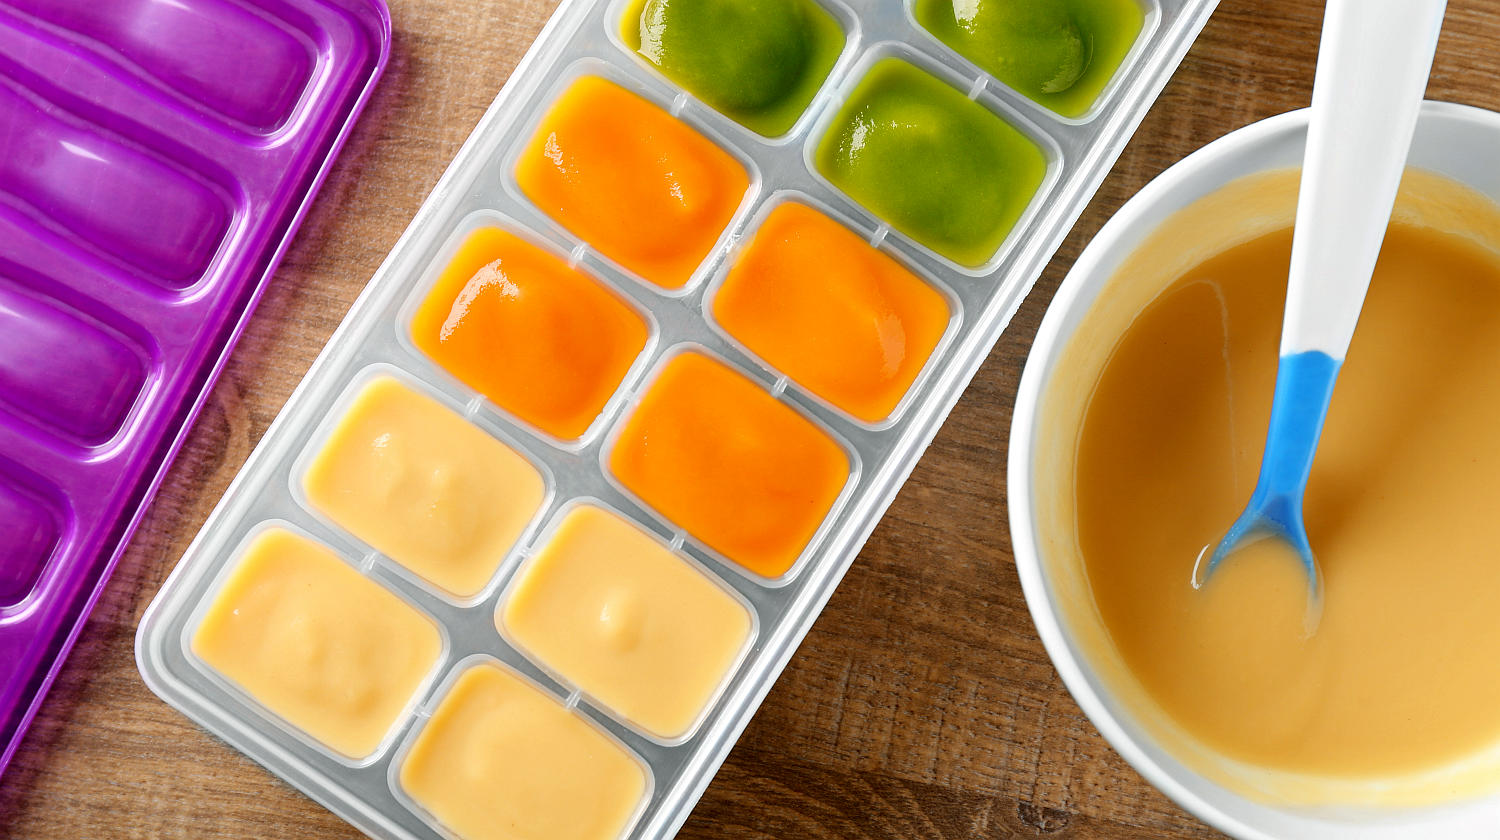 Feature | Container bowl baby food on table | Brilliant Ice Cube Tray Hacks You Can Do At Home